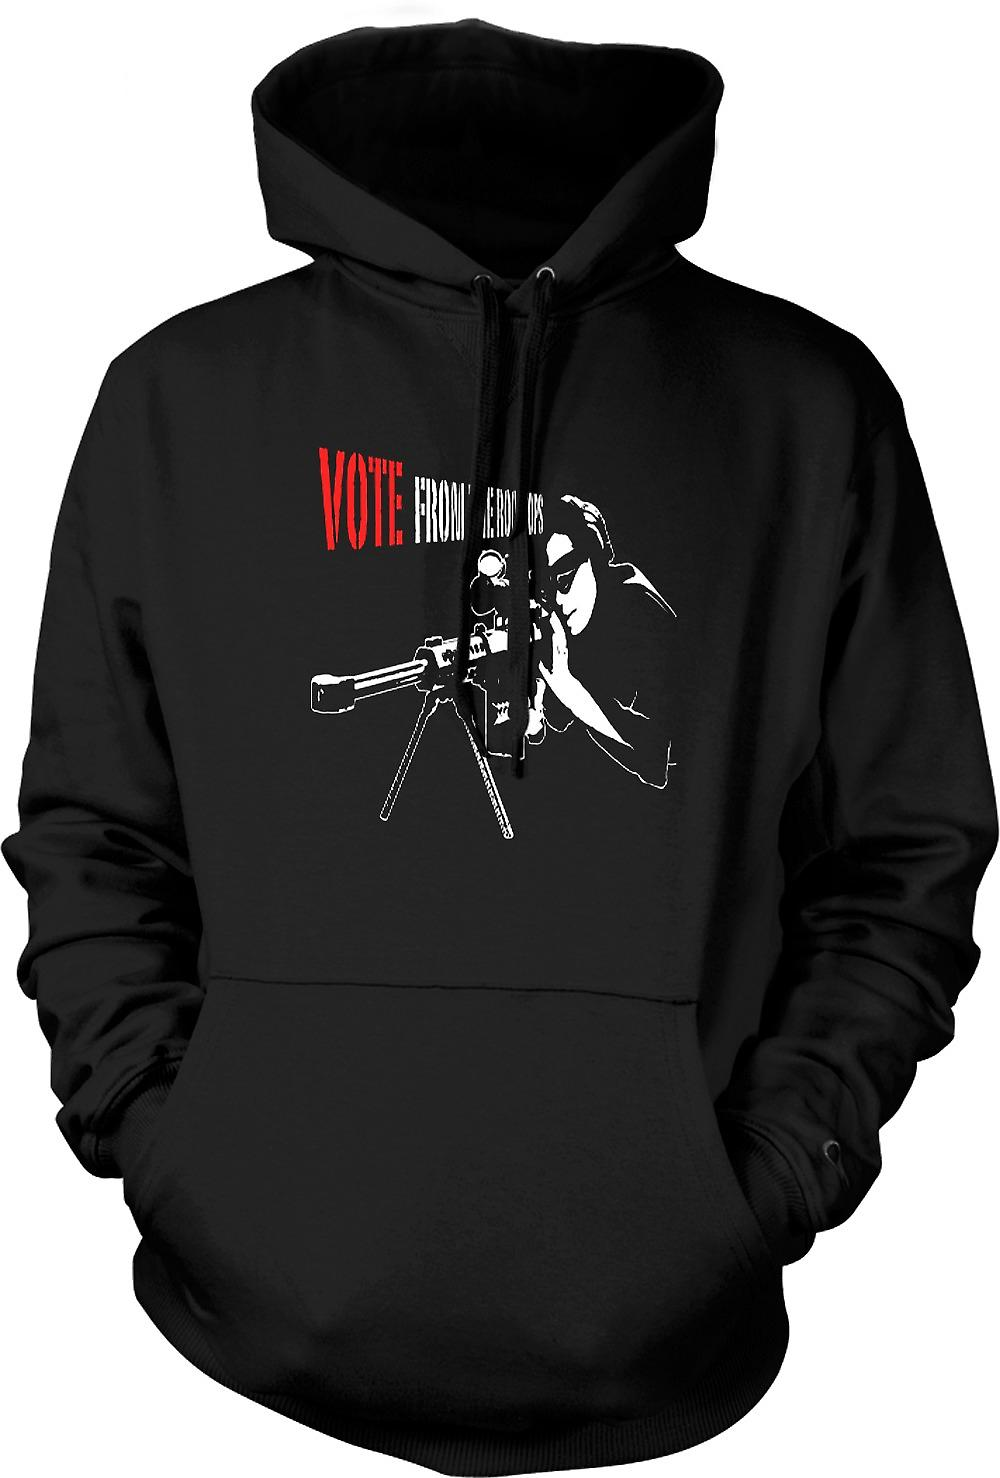 Mens Hoodie - Sniper - Vote From The Rooftop